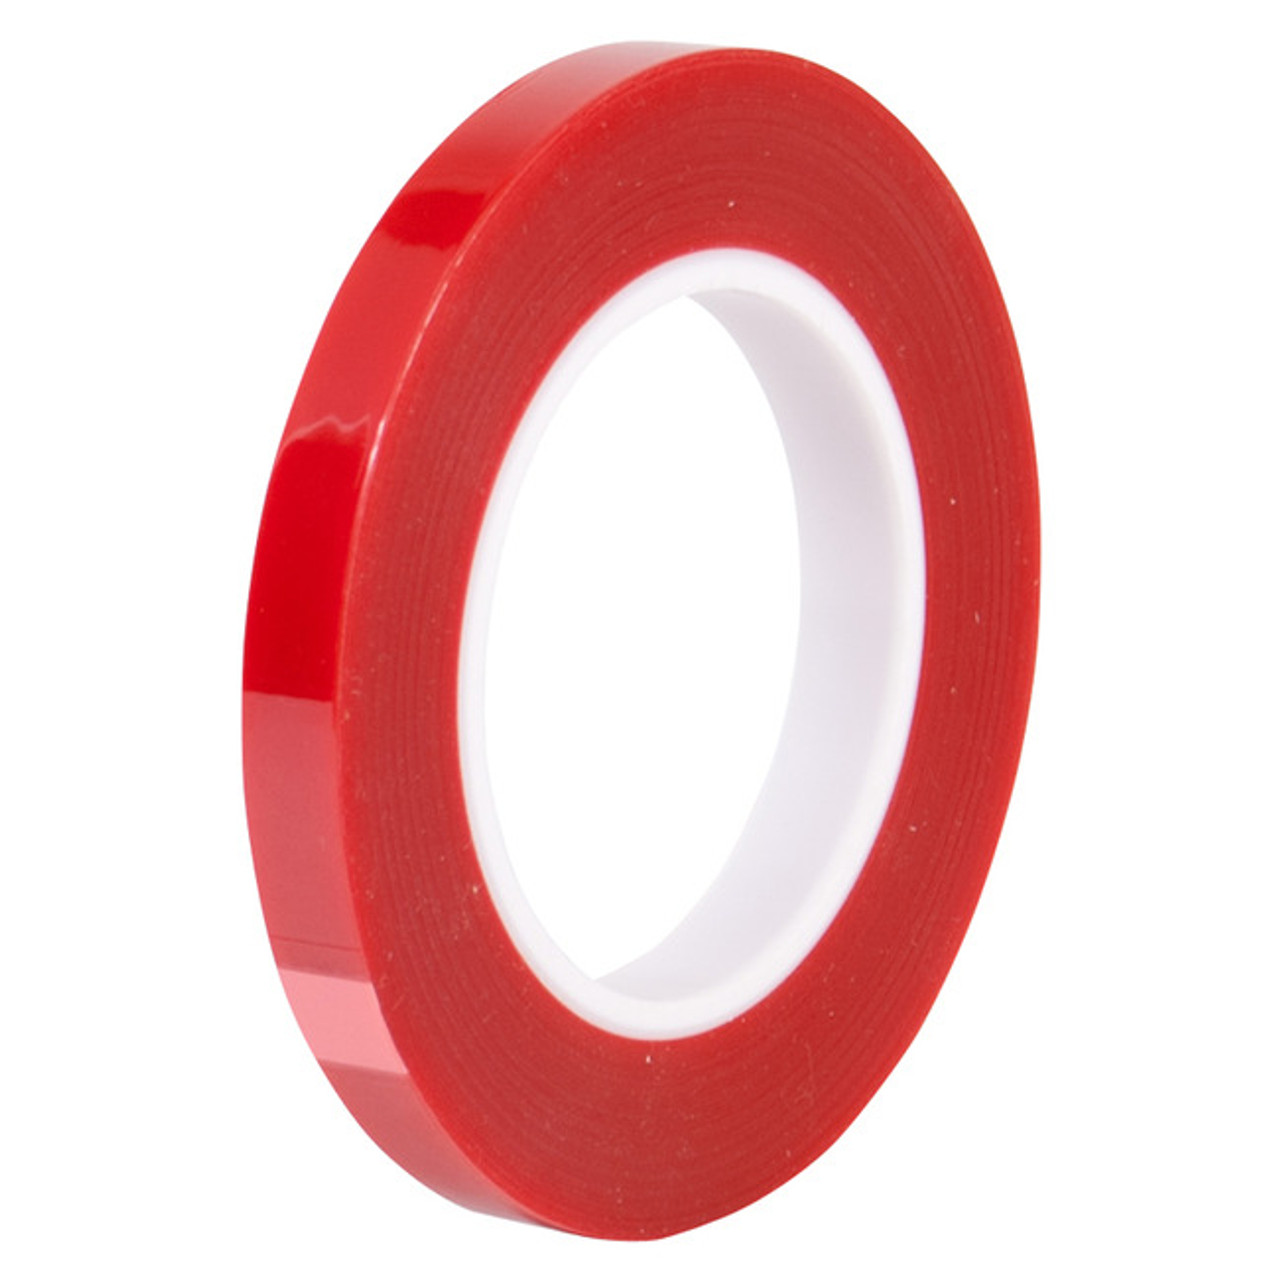 """Electro plating process tape 1/2"""" x 72 yd Red (fls-M717-281-.5), 12.7mm"""